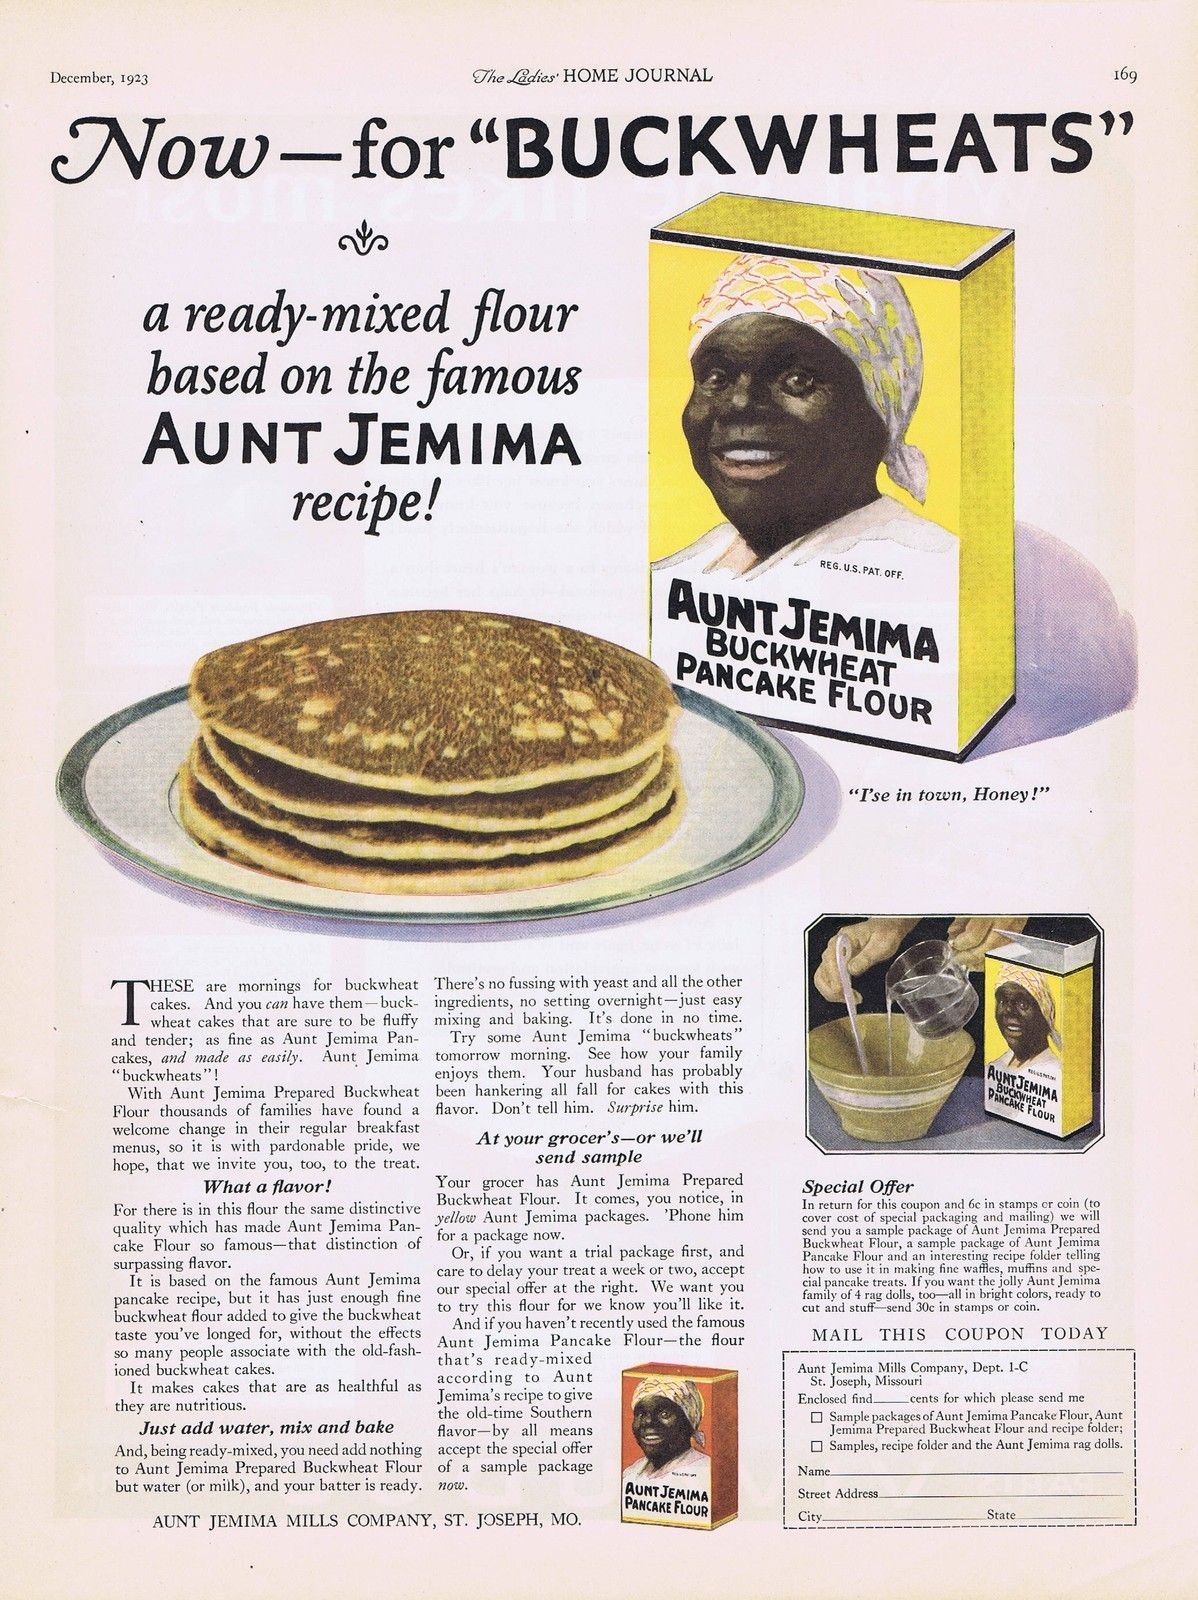 how to make aunt jemima pancakes from scratch